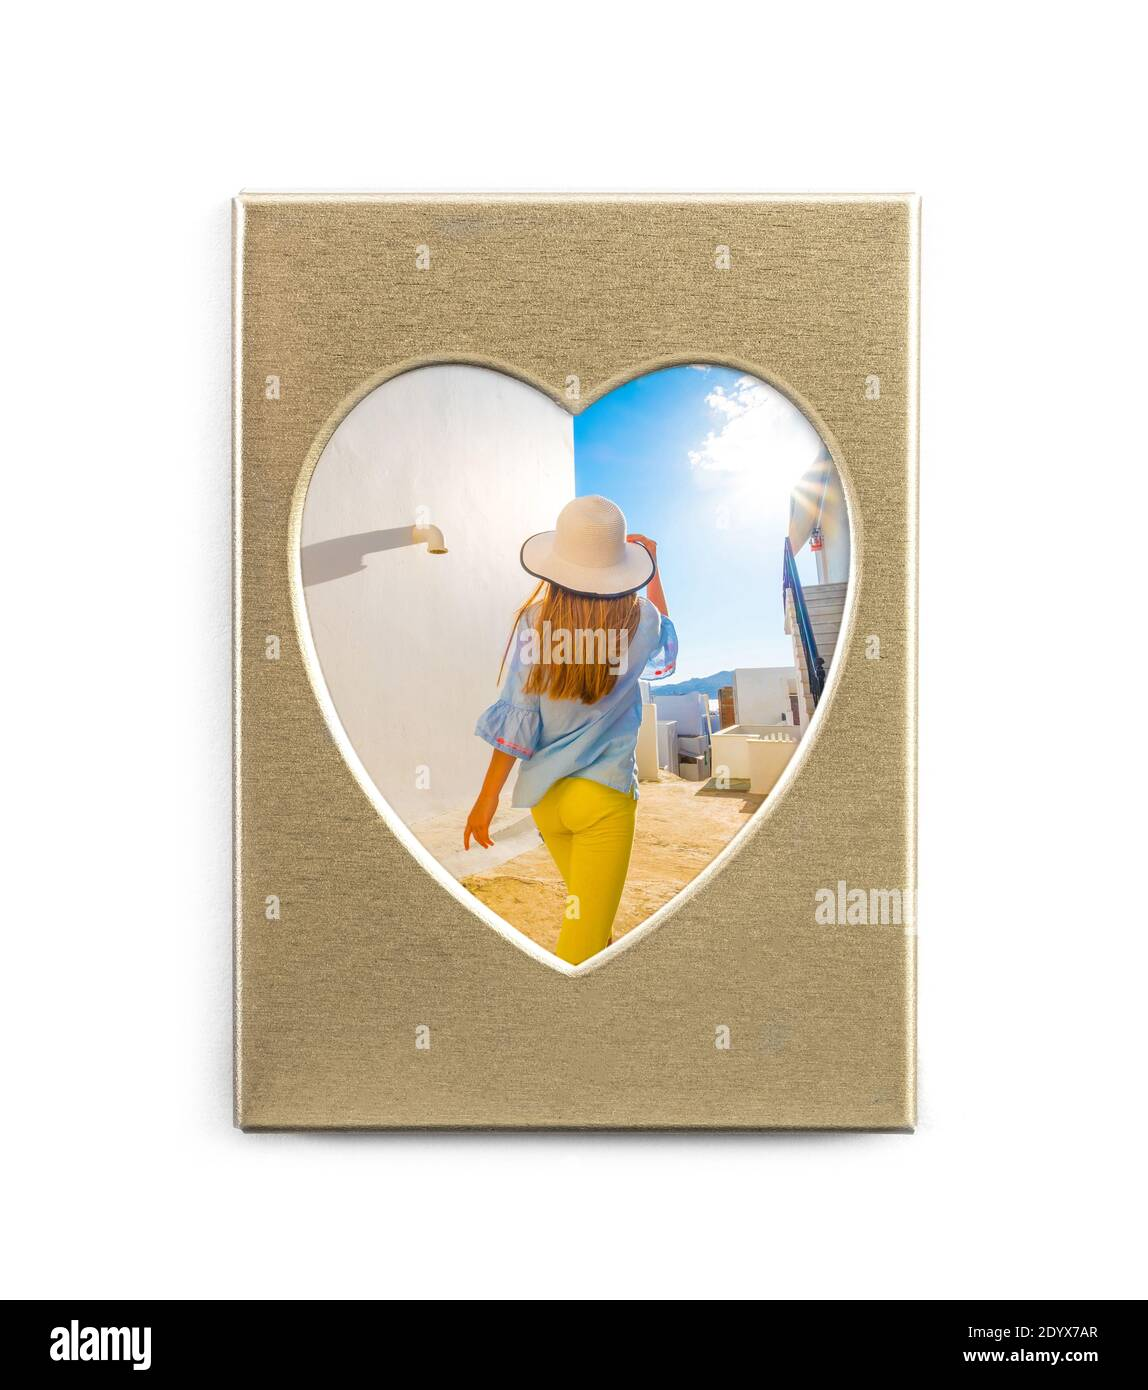 Cute summer photo in golden frame in shape of heart isolated on white background Stock Photo